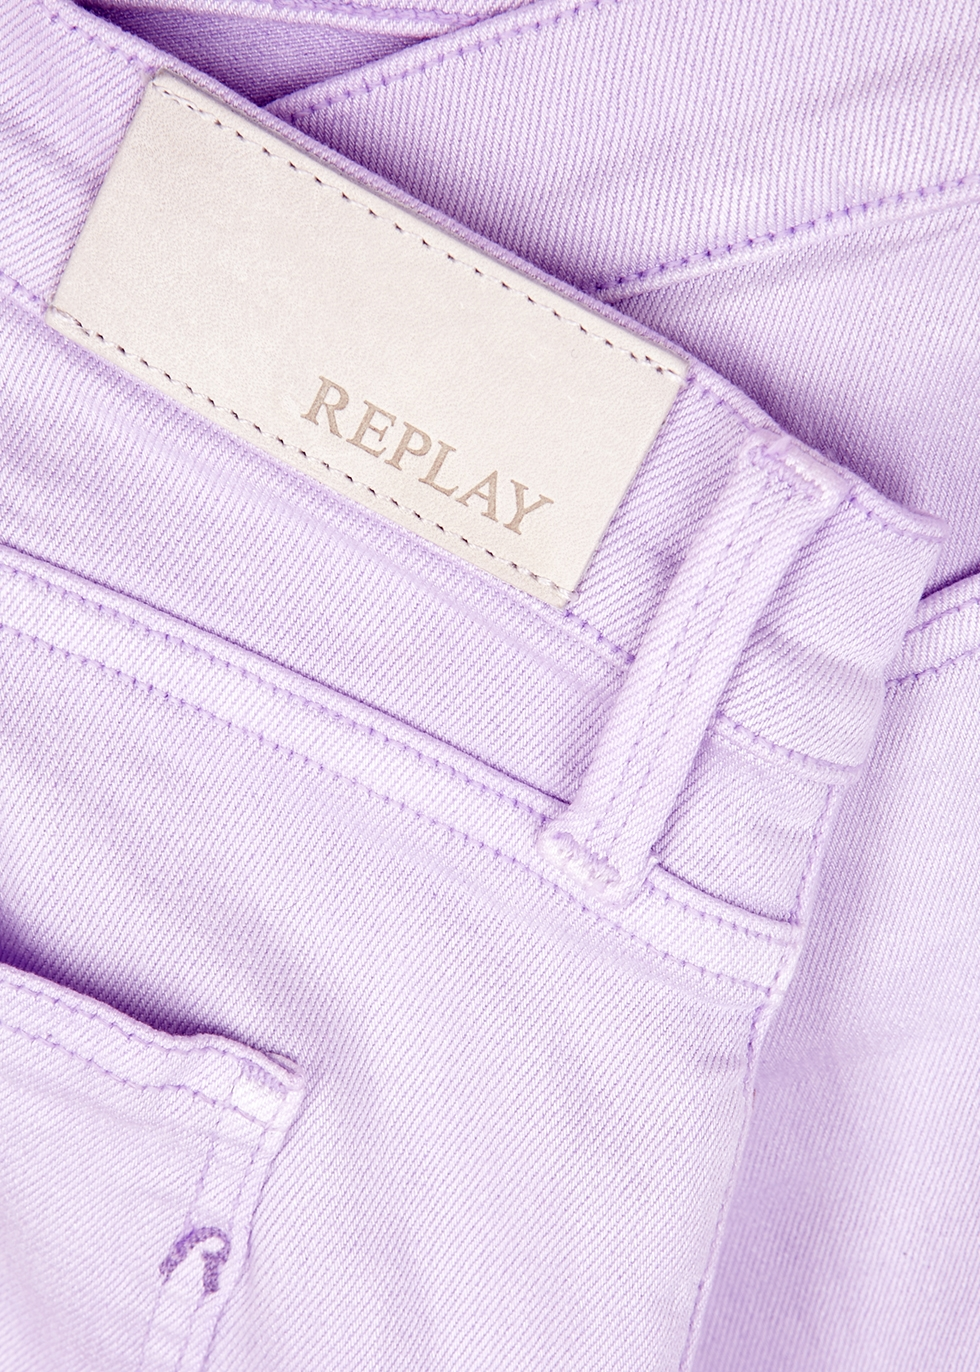 Lilac Touch skinny jeans - Replay